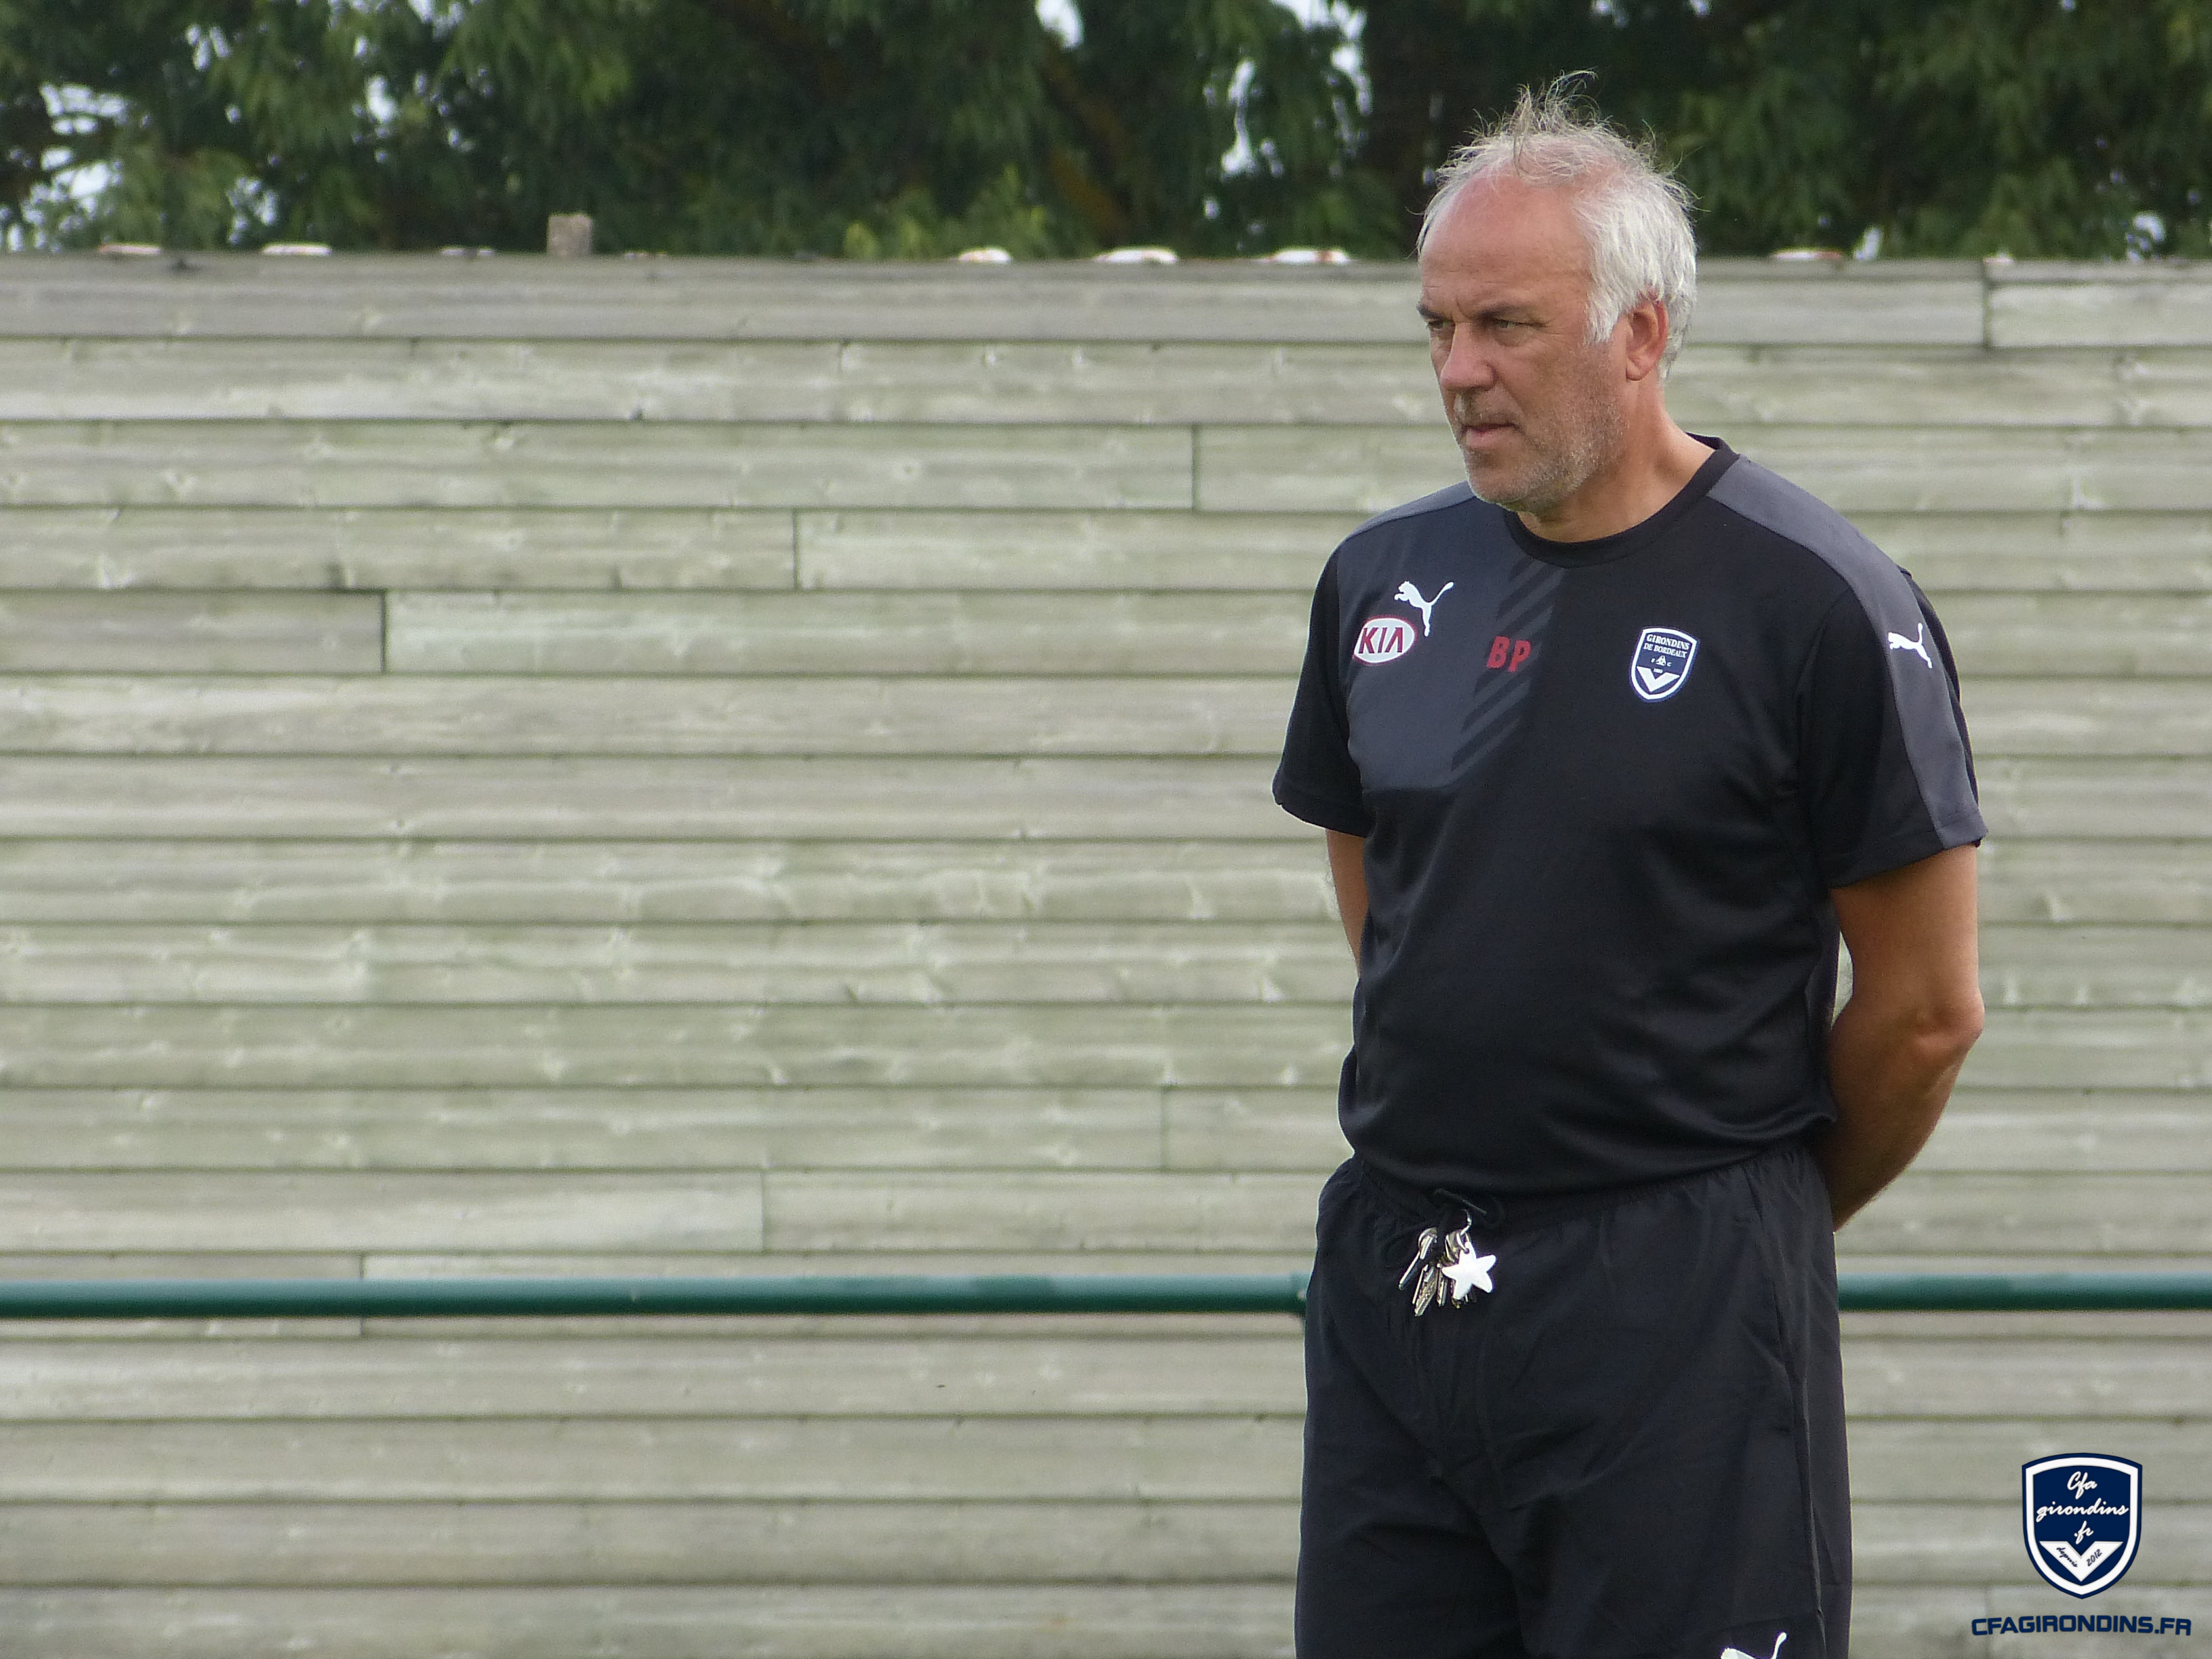 Cfa Girondins : Patrick Battiston -